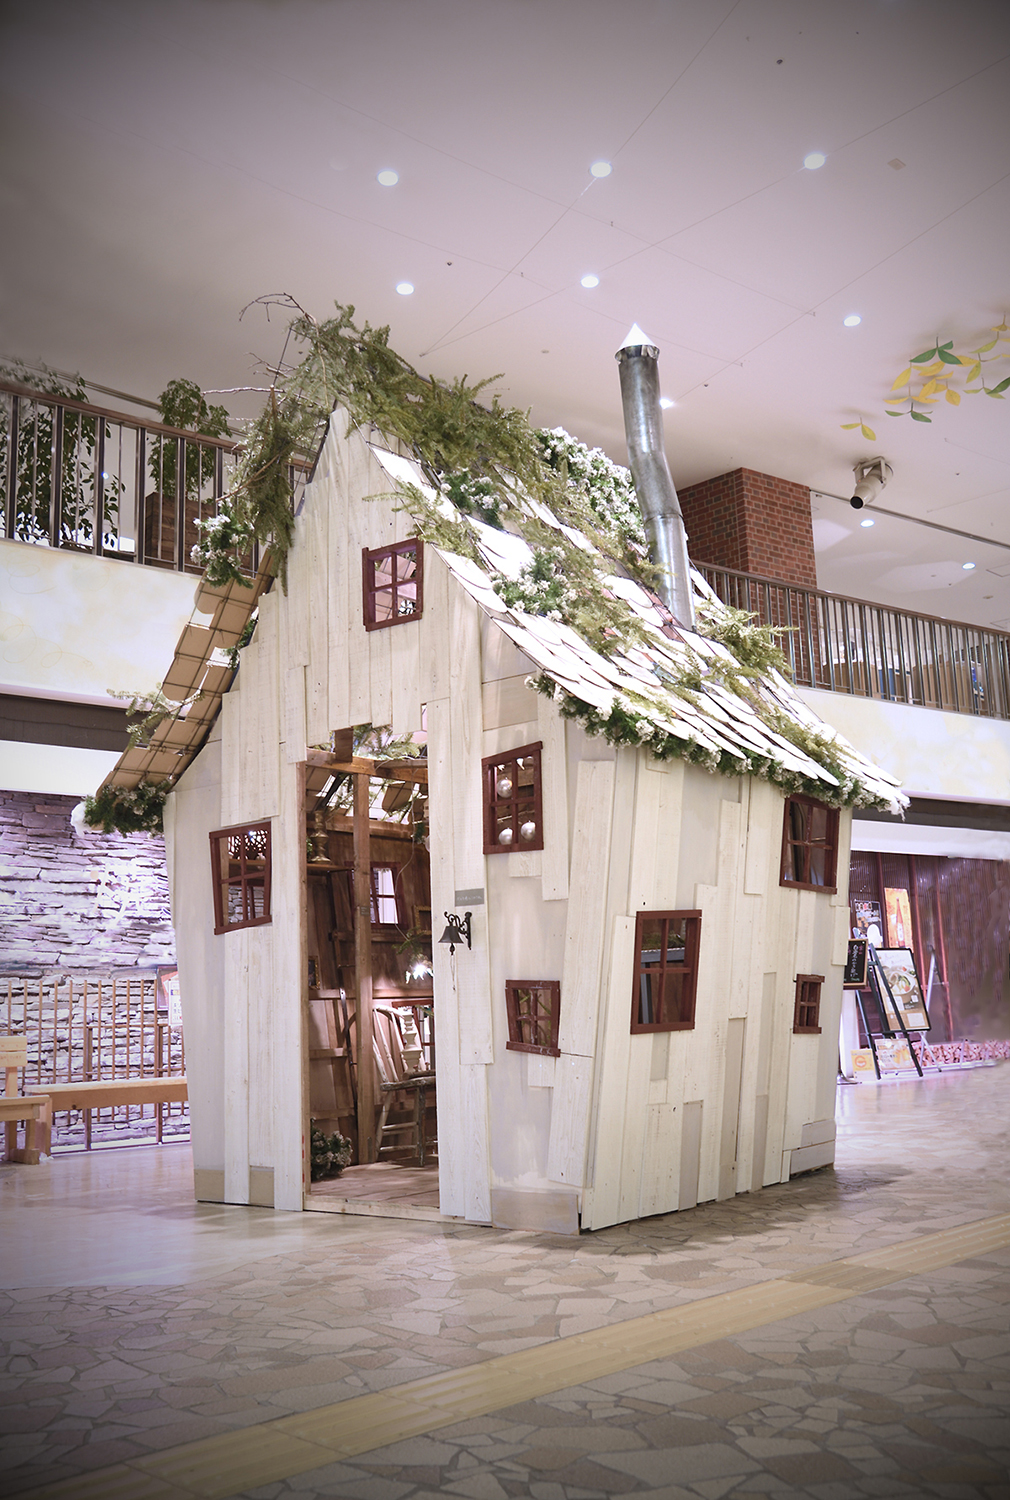 http://www.record-jp.com/news/entry_images/christmashouse-hp-001.jpg